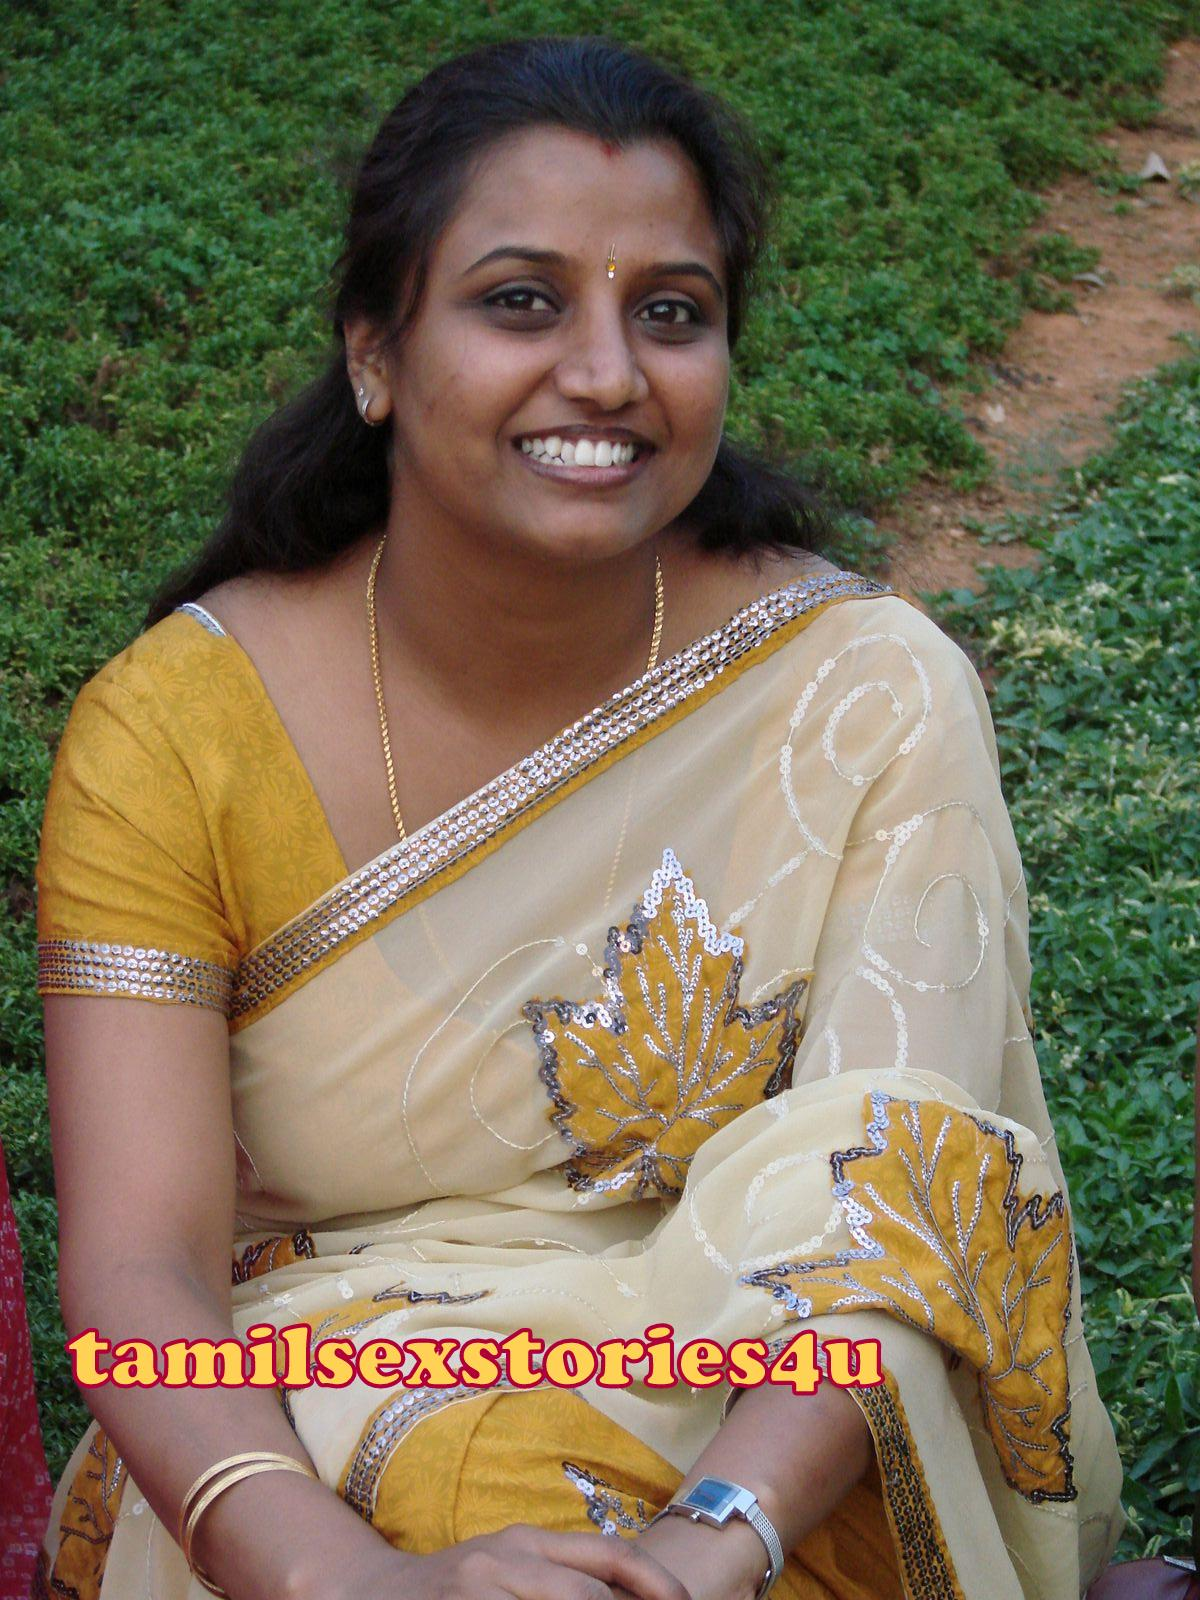 Tamil aunty sex image have appeared